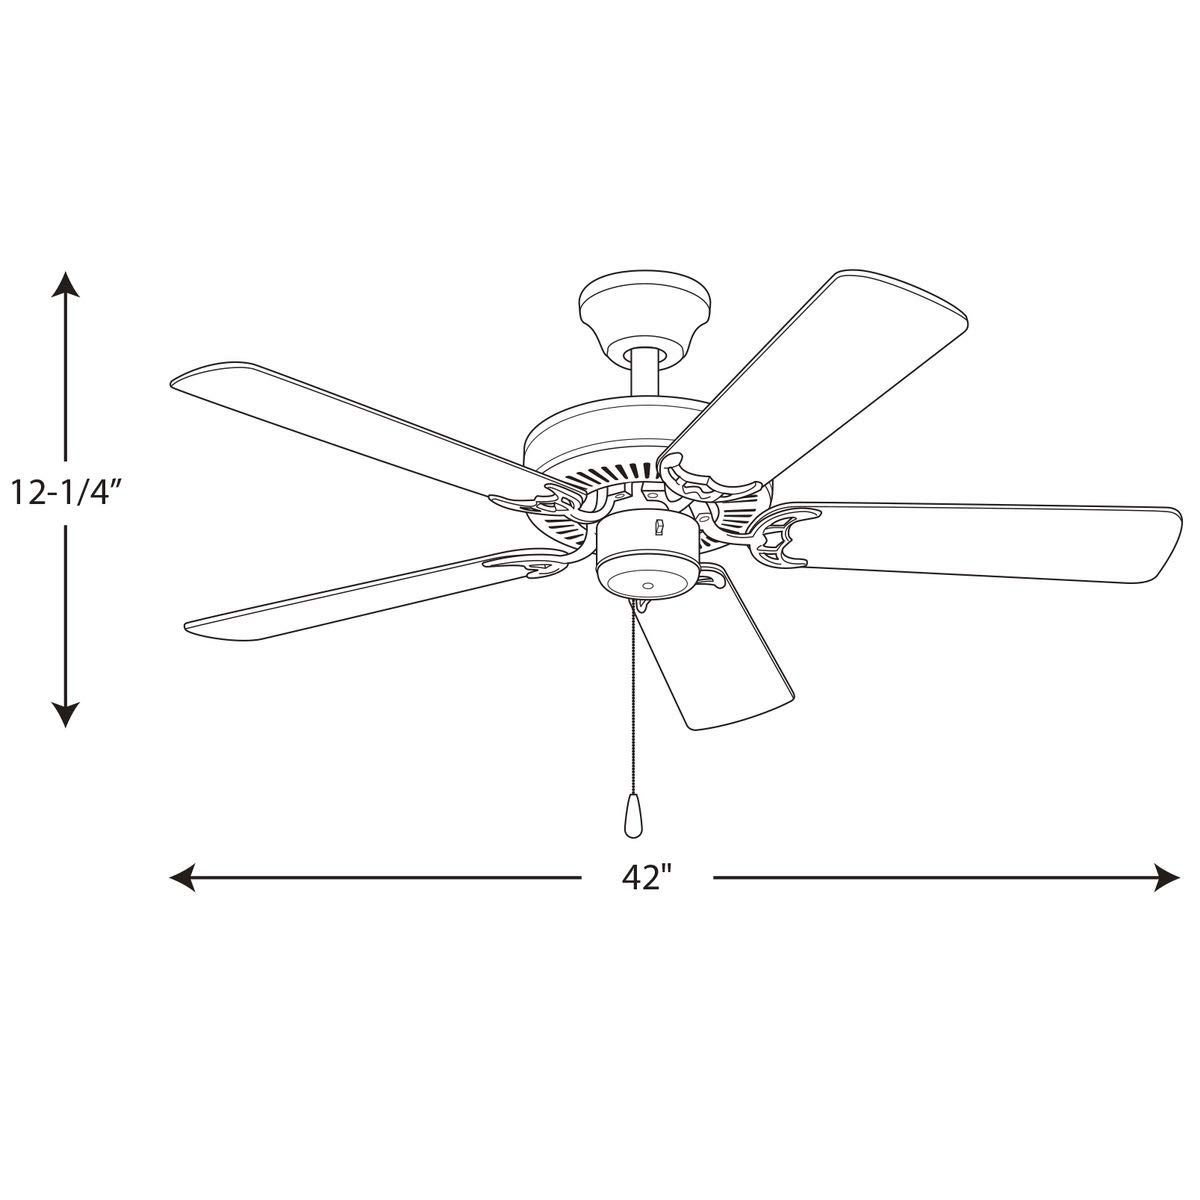 Progress Lighting P2500-09 42-Inch Fan with 5 Blades with Reversible Cherry/Natural Cherry Blades, Brushed Nickel by Progress Lighting (Image #7)